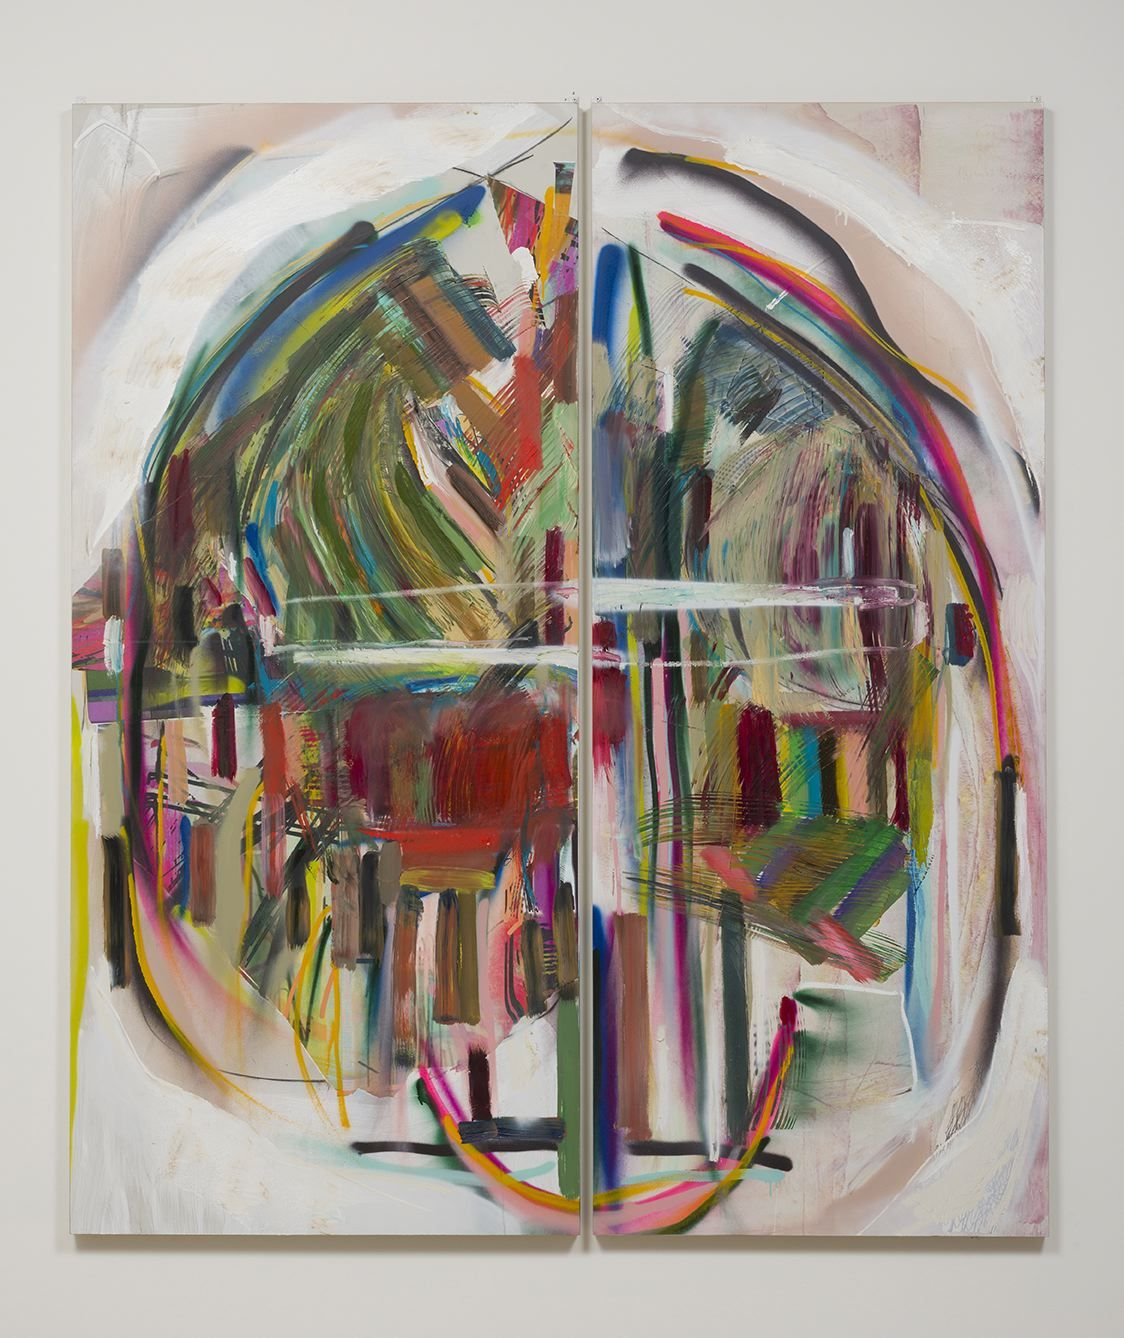 Michael John Kelly, Action and Action, 2014